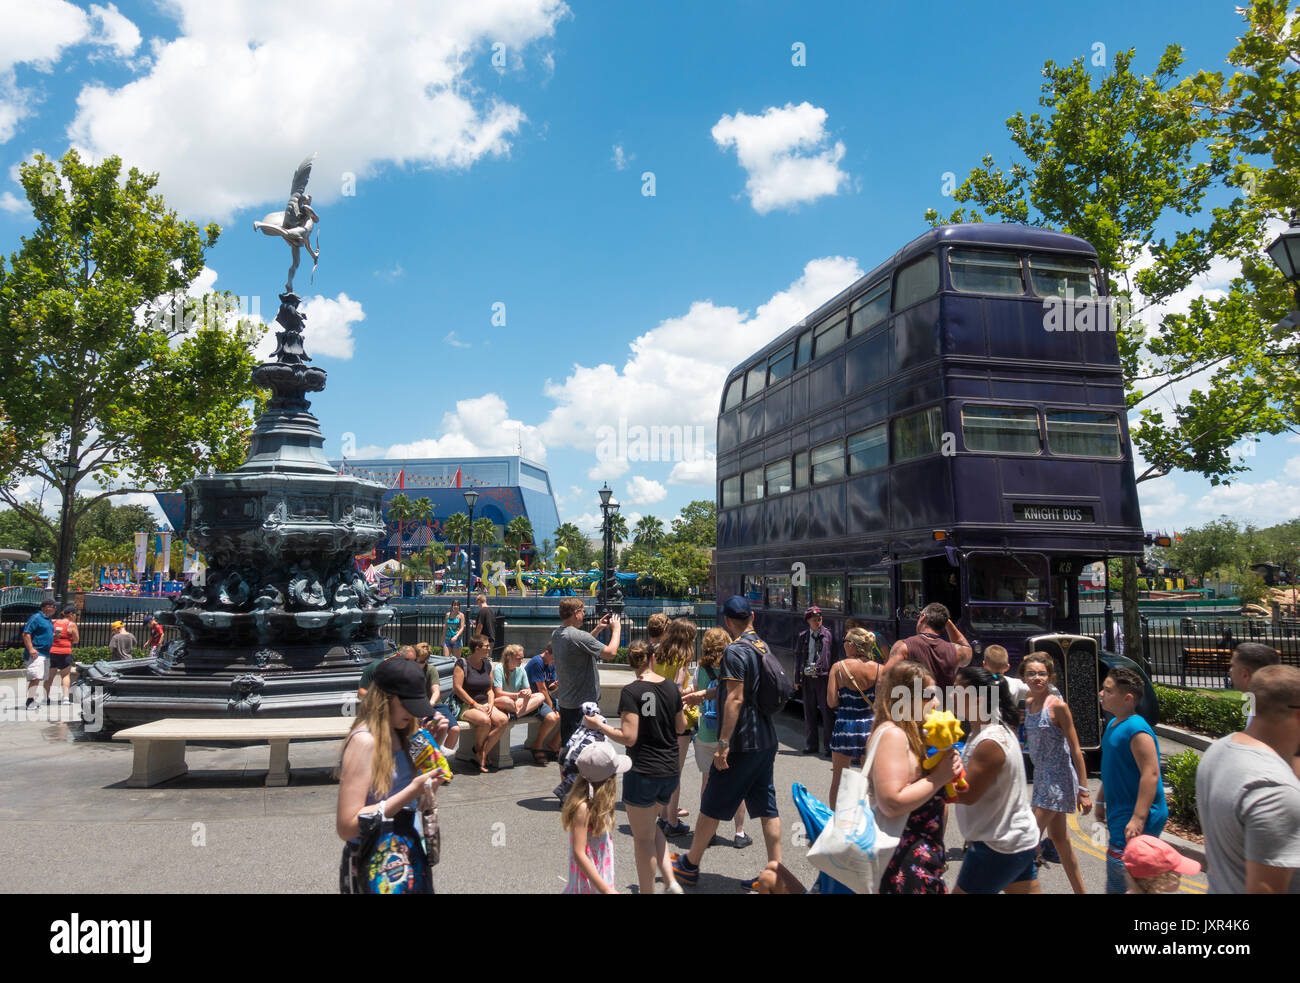 The Knight Bus and Shaftesbury Memorial Fountain in Universal Studios, Orlando, Florida. - Stock Image